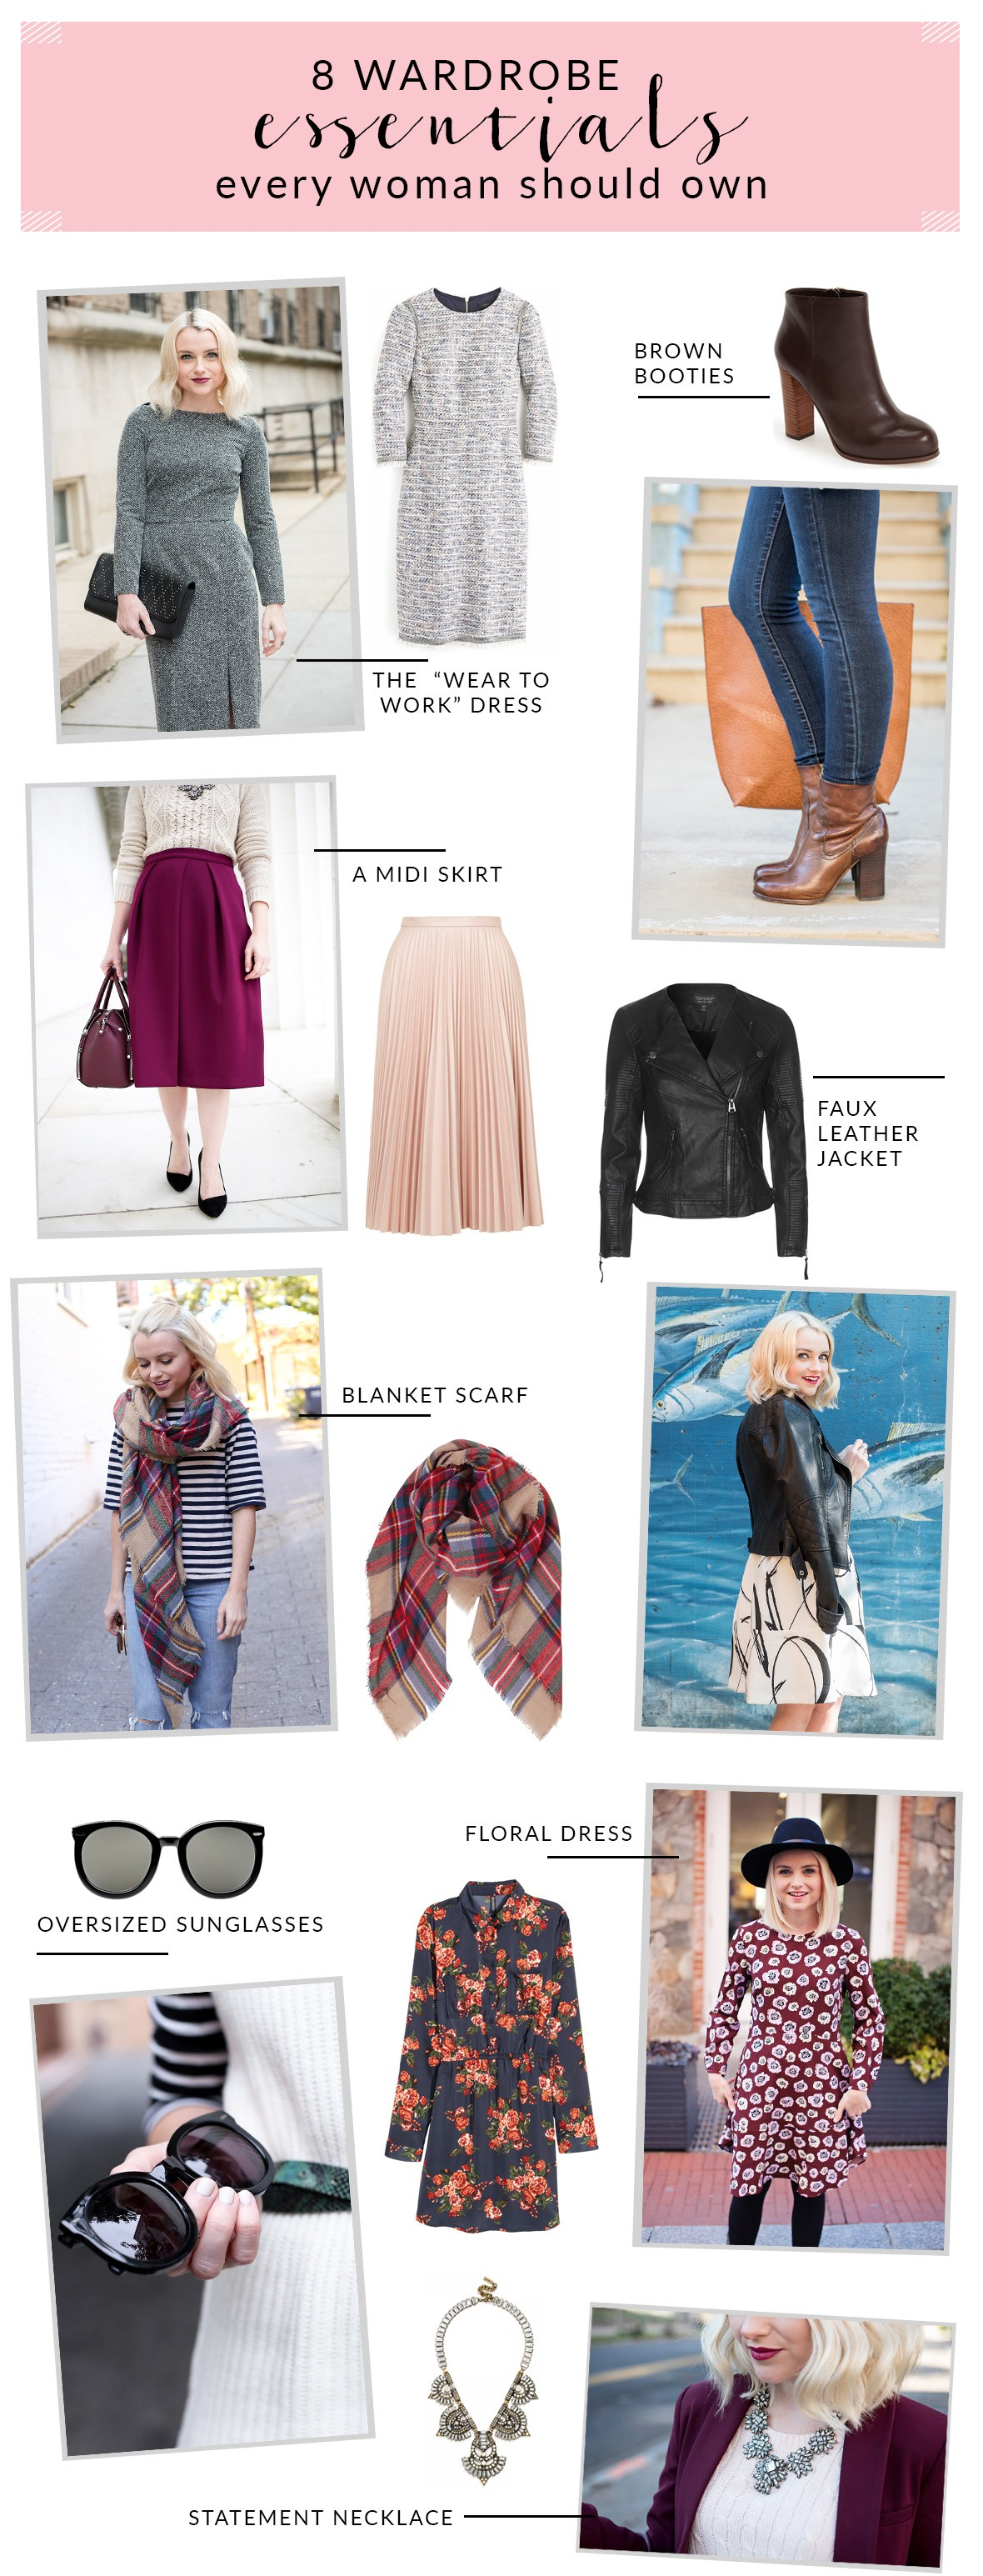 """f3bdb68d52 Every woman has their own list of """"must have"""" items, but after much  consideration, I've determined that this is my list of the 8 Wardrobe  Essentials Every ..."""